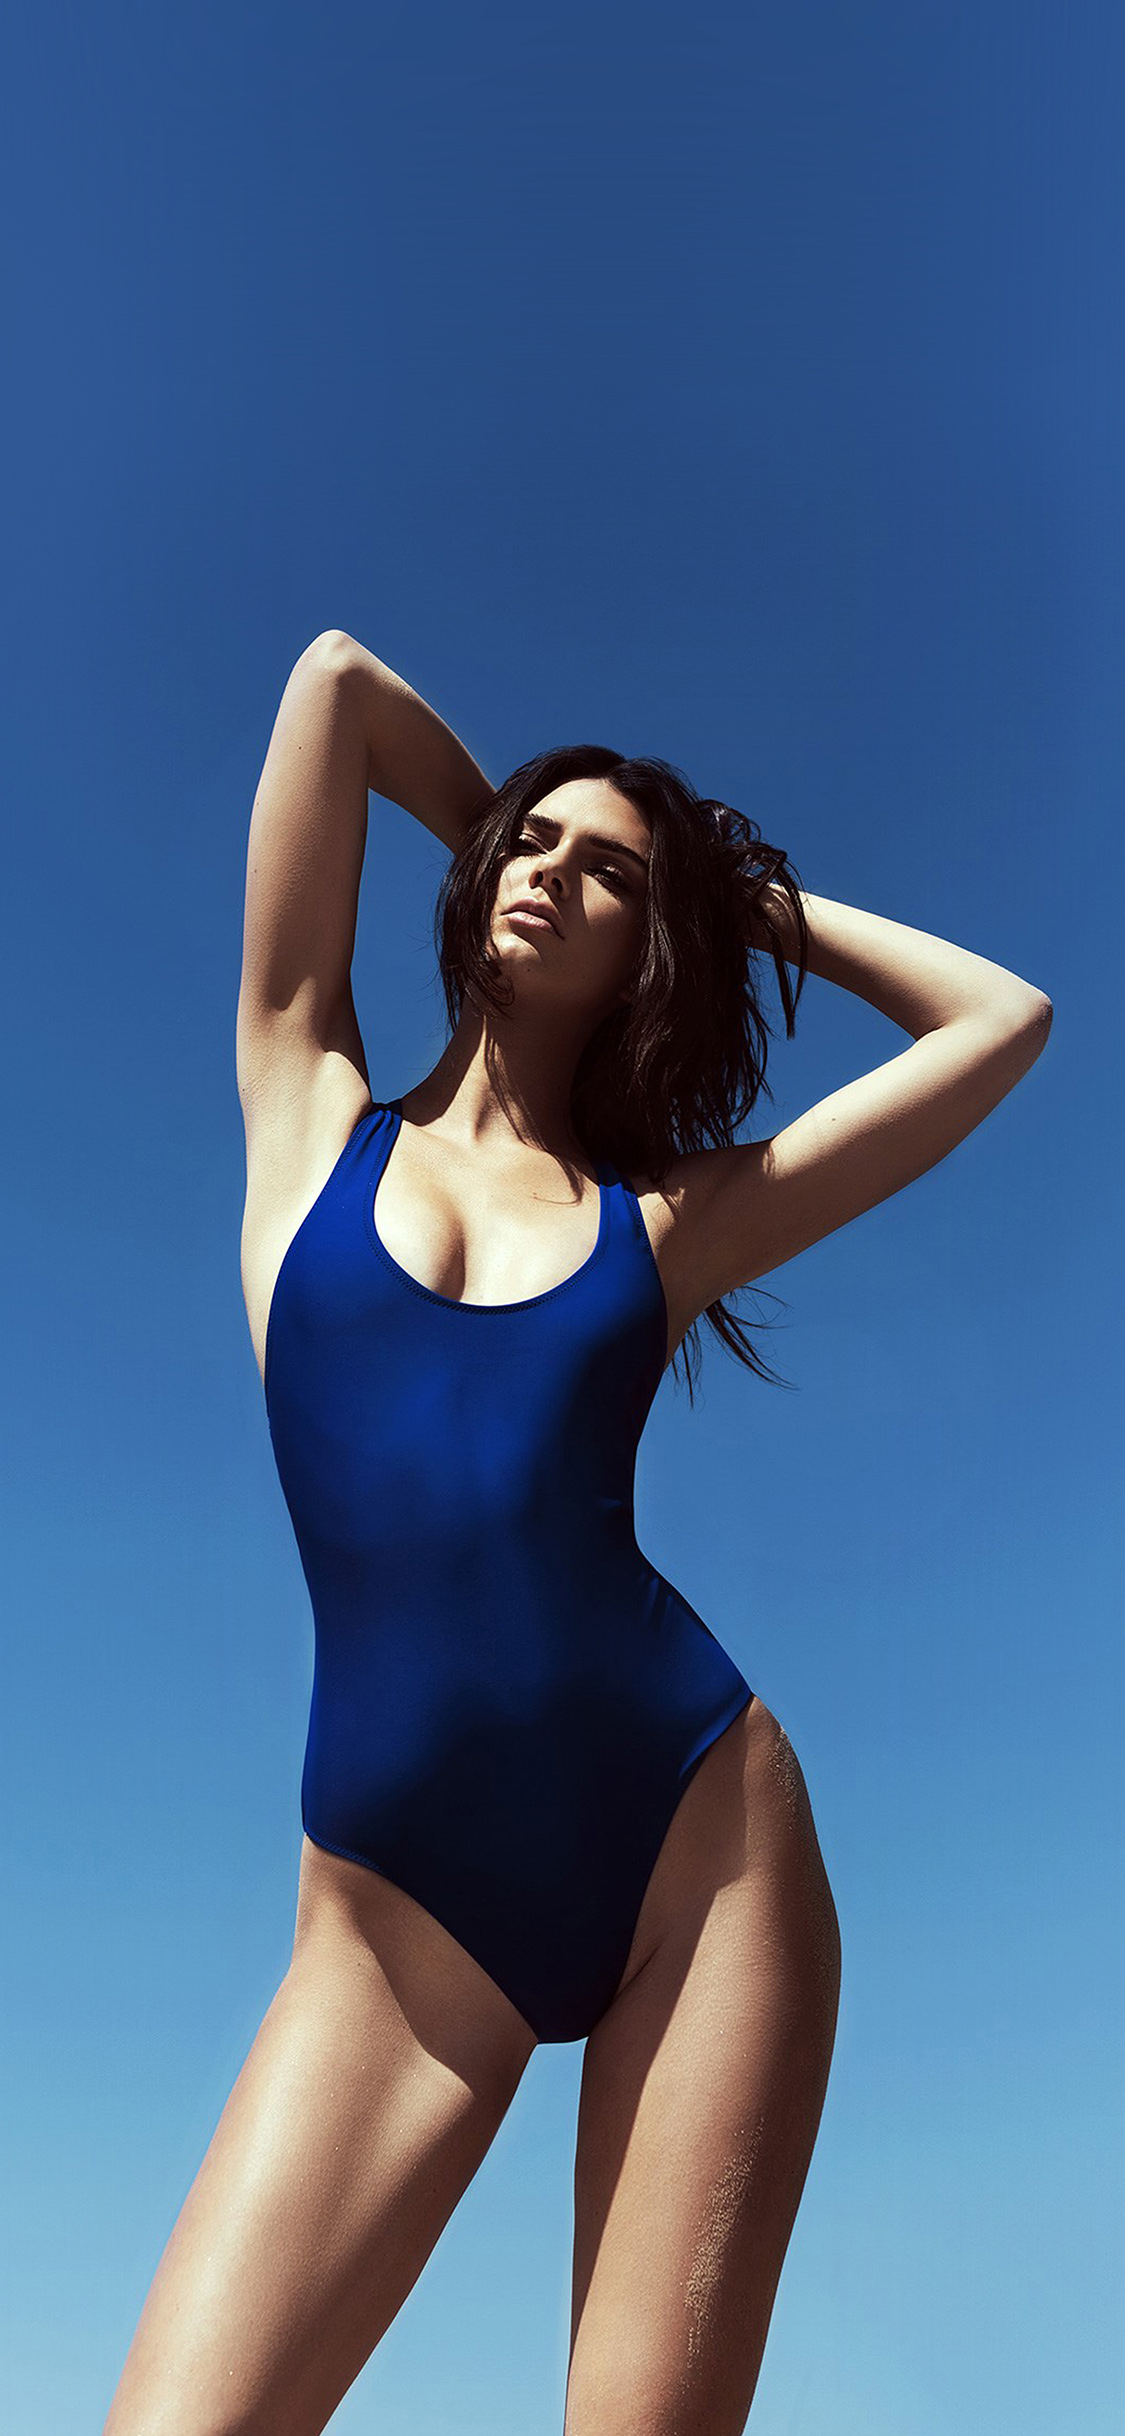 iPhoneXpapers.com-Apple-iPhone-wallpaper-hj59-kendall-jenner-blue-bikini-summer-cool-sexy